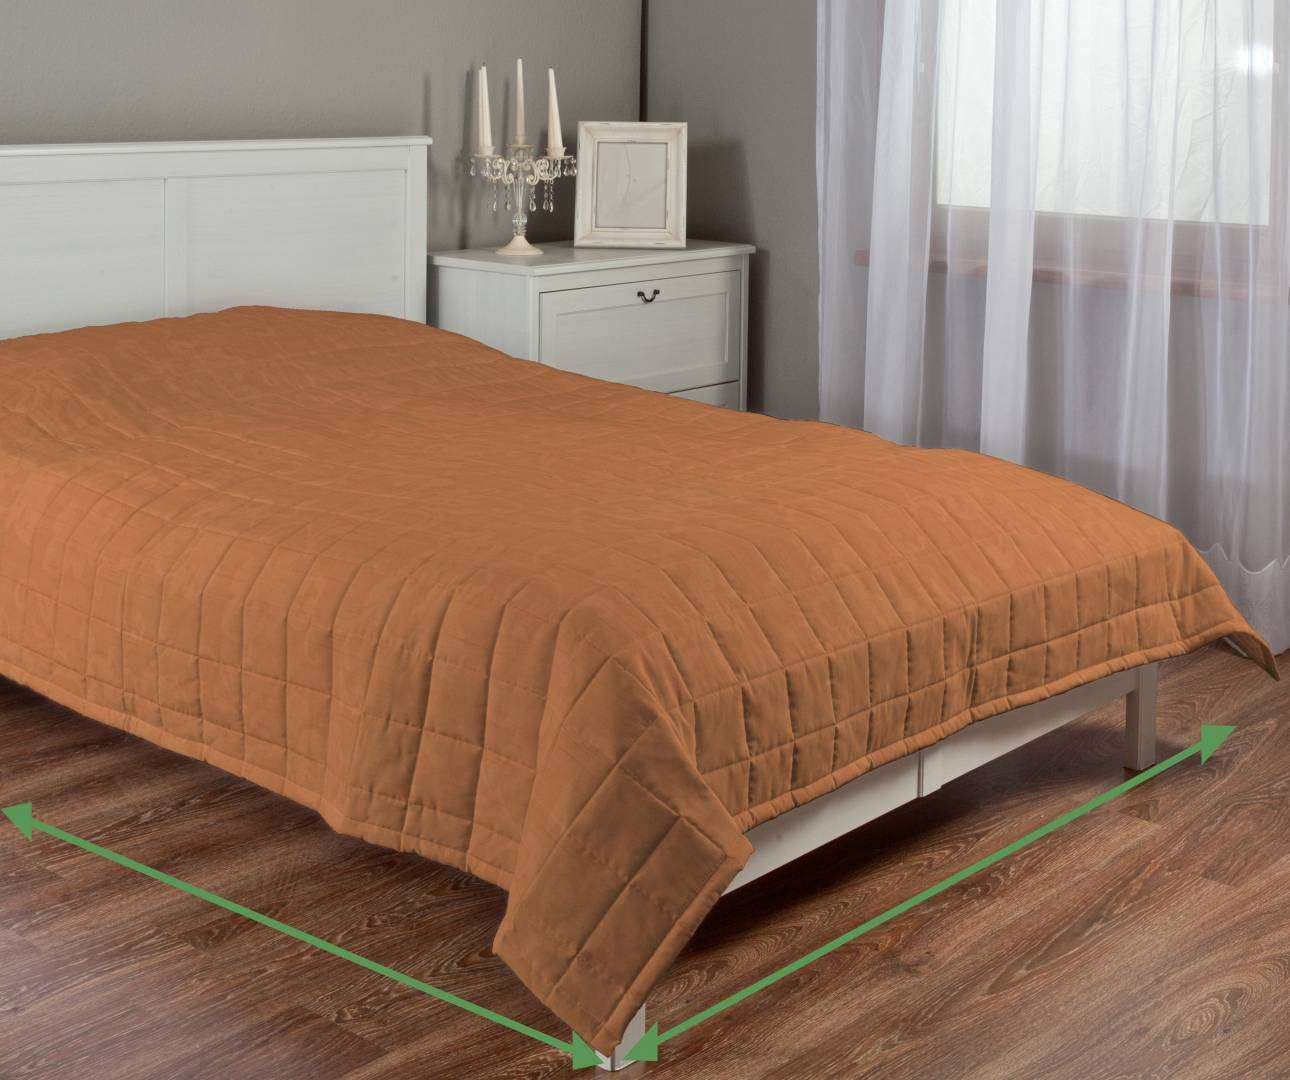 Quilted throw (check quilt pattern) in collection Taffeta, fabric: 103-98